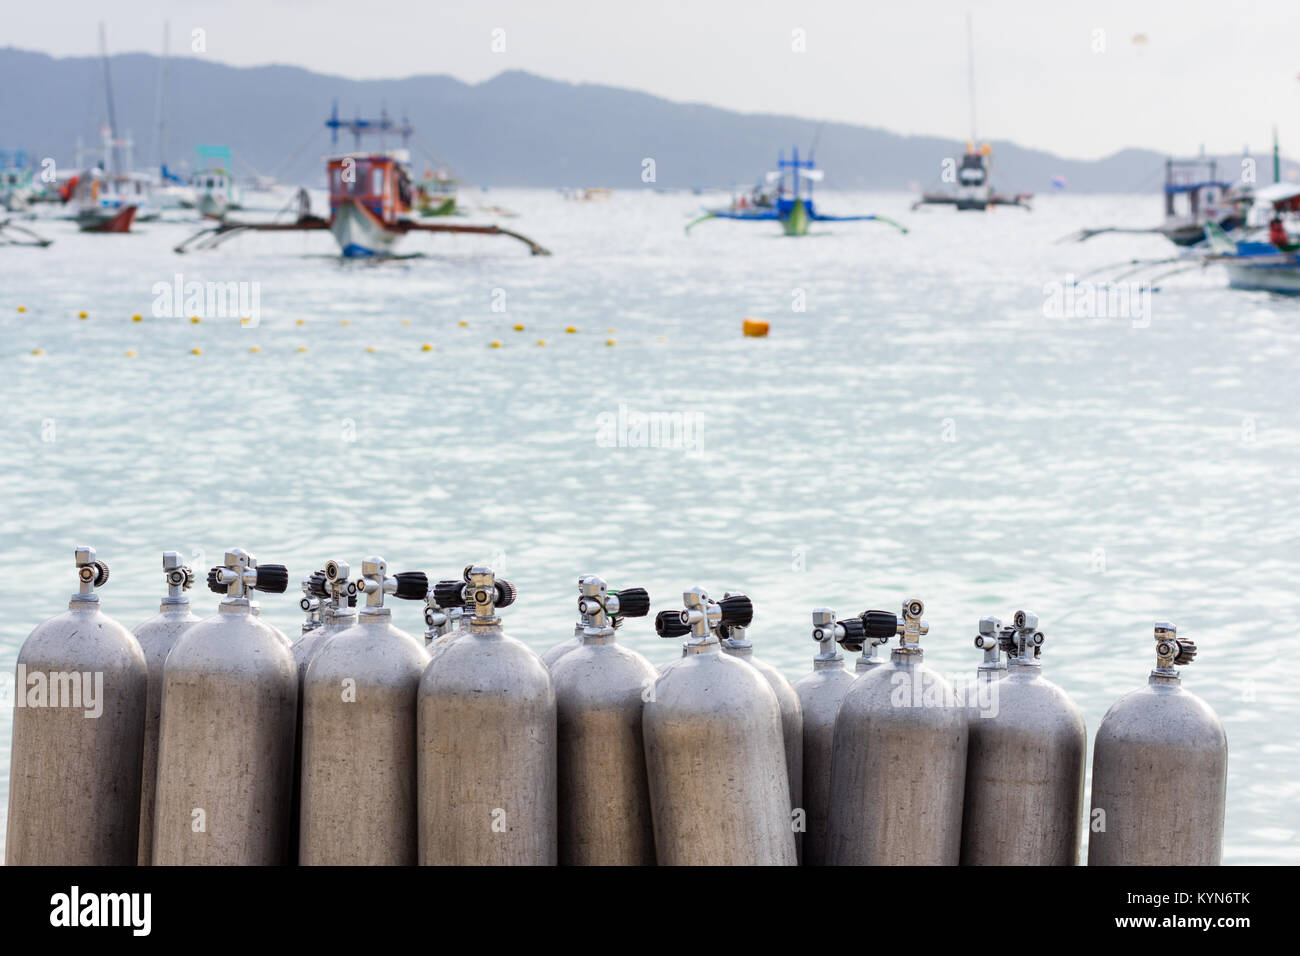 A collection of scuba divers air taks on a tropical white sand beach with depth of field back ground of calm sea - Stock Image